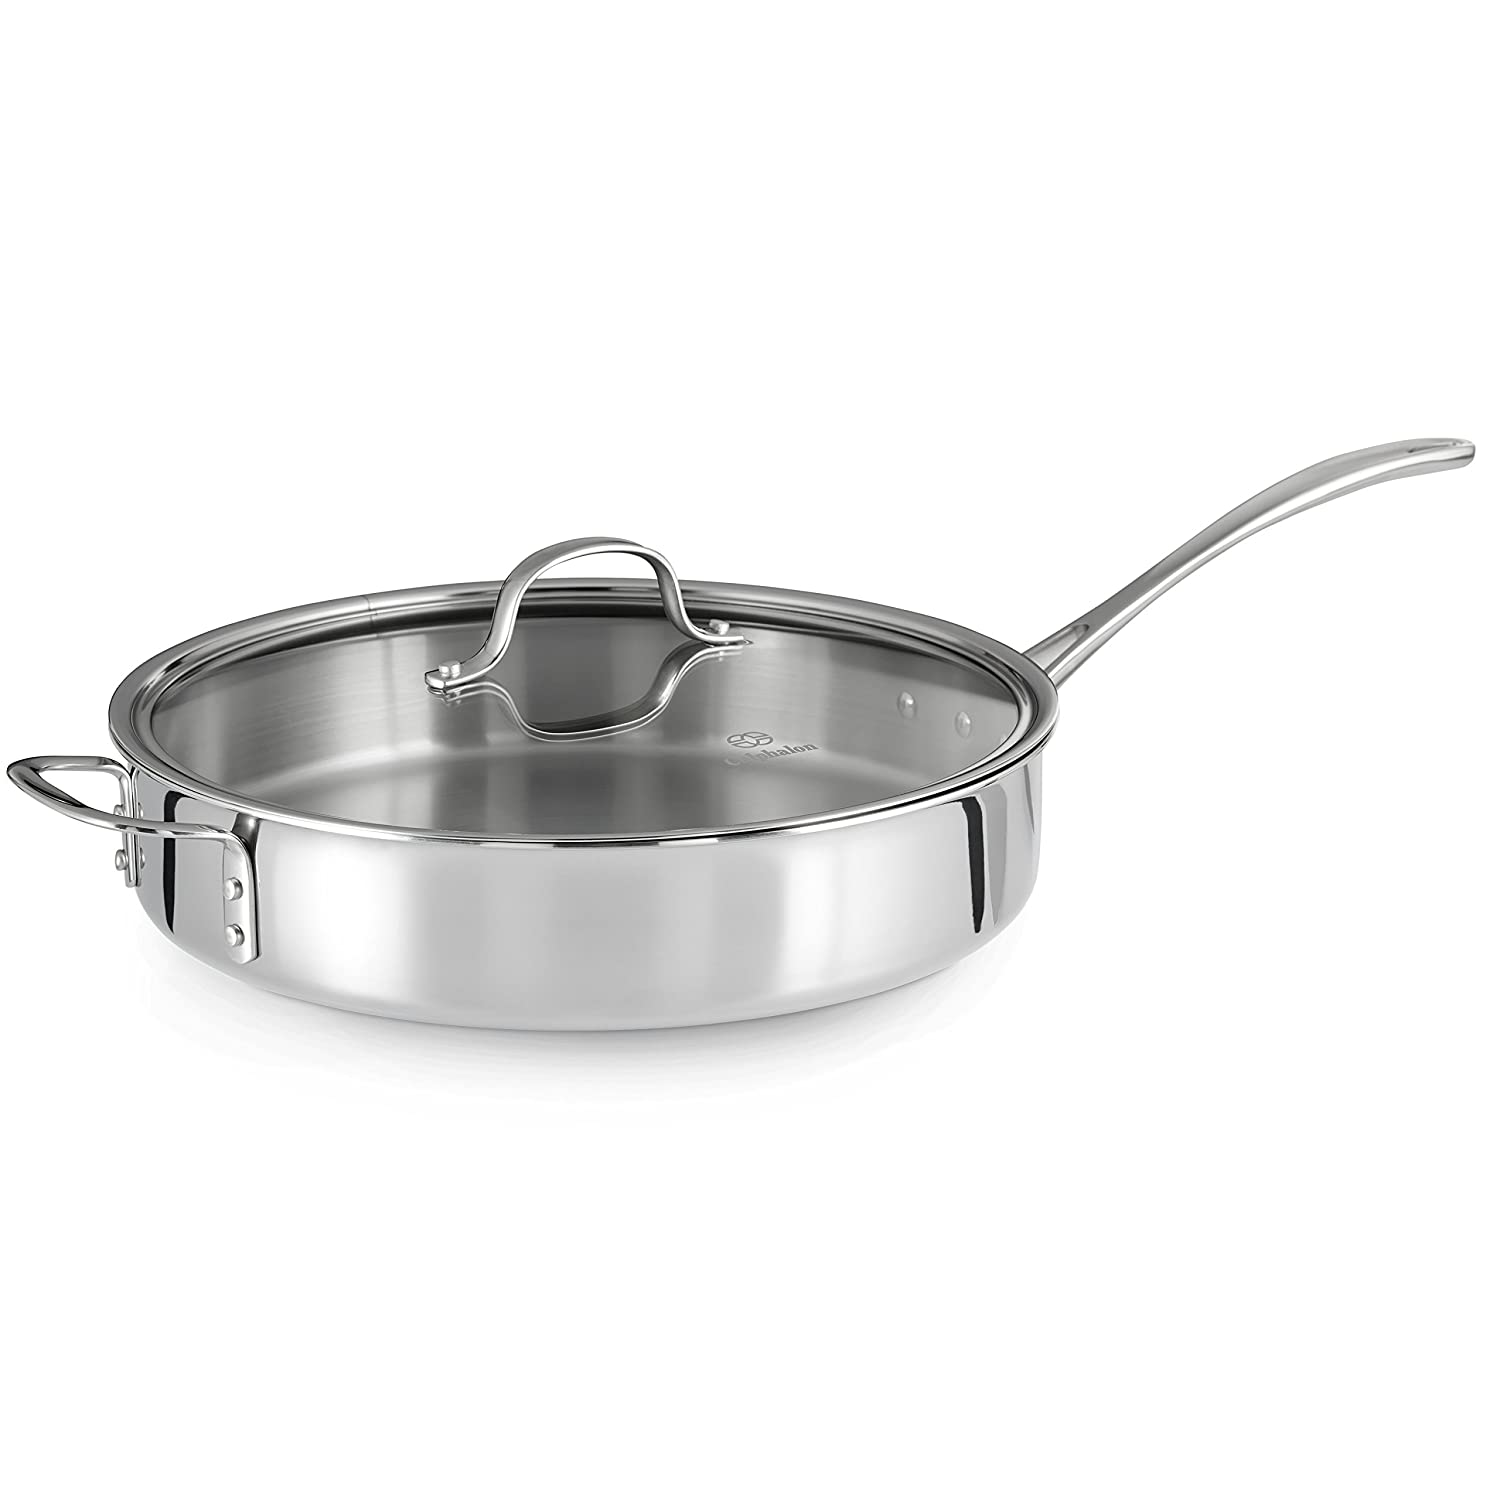 Calphalon Tri-Ply Stainless Steel 5-Quart Saute Pan with Cover